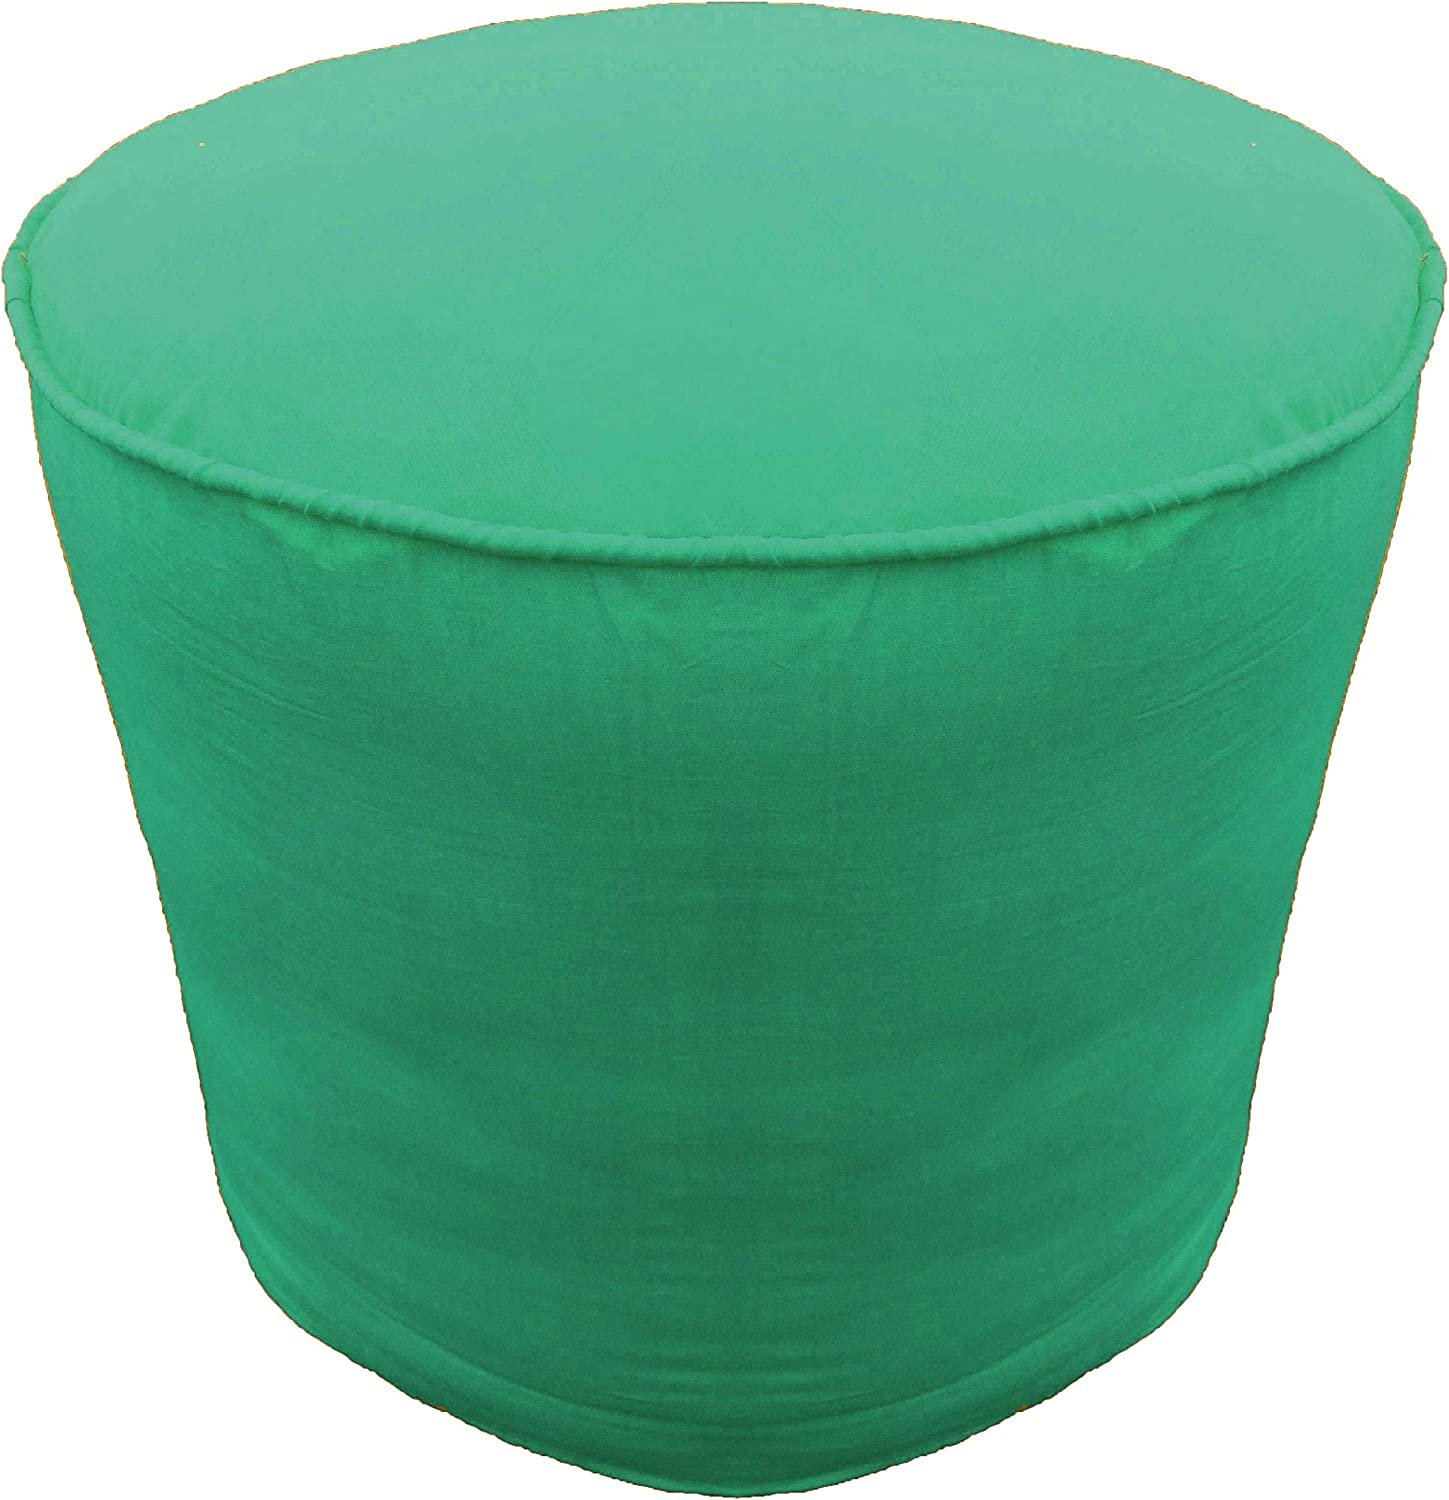 Footstool Round Pouffe Cover Cheap with Piping Ottoman Department store Te Cotton